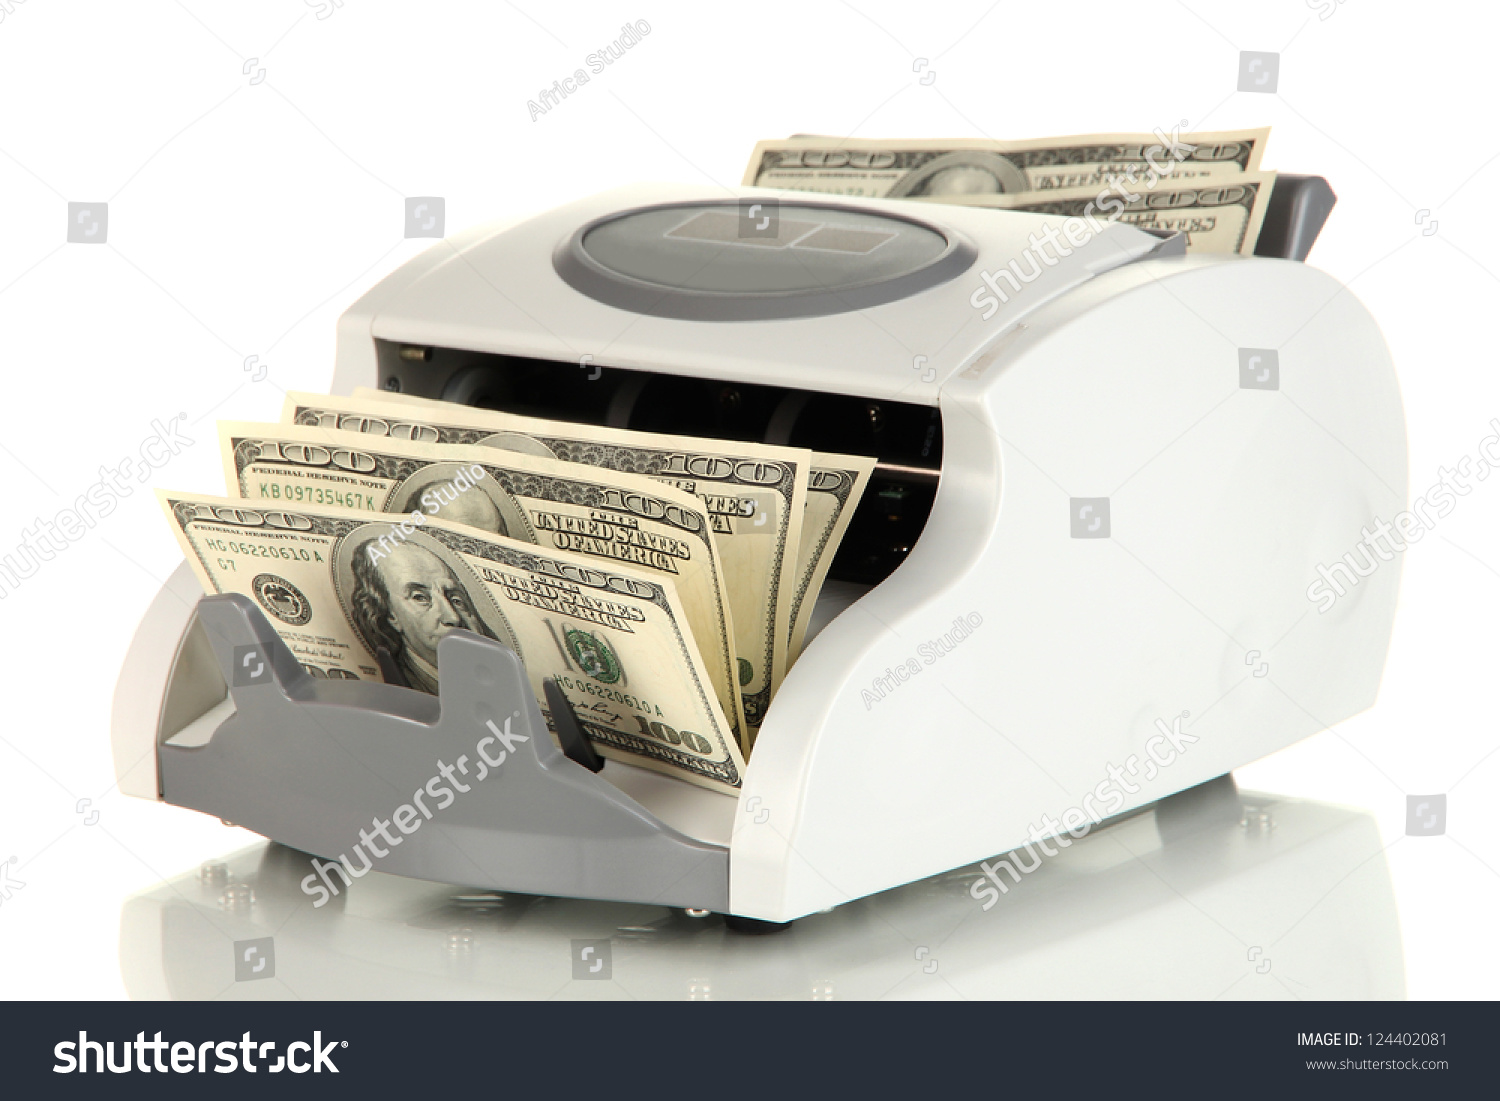 machine for counting money